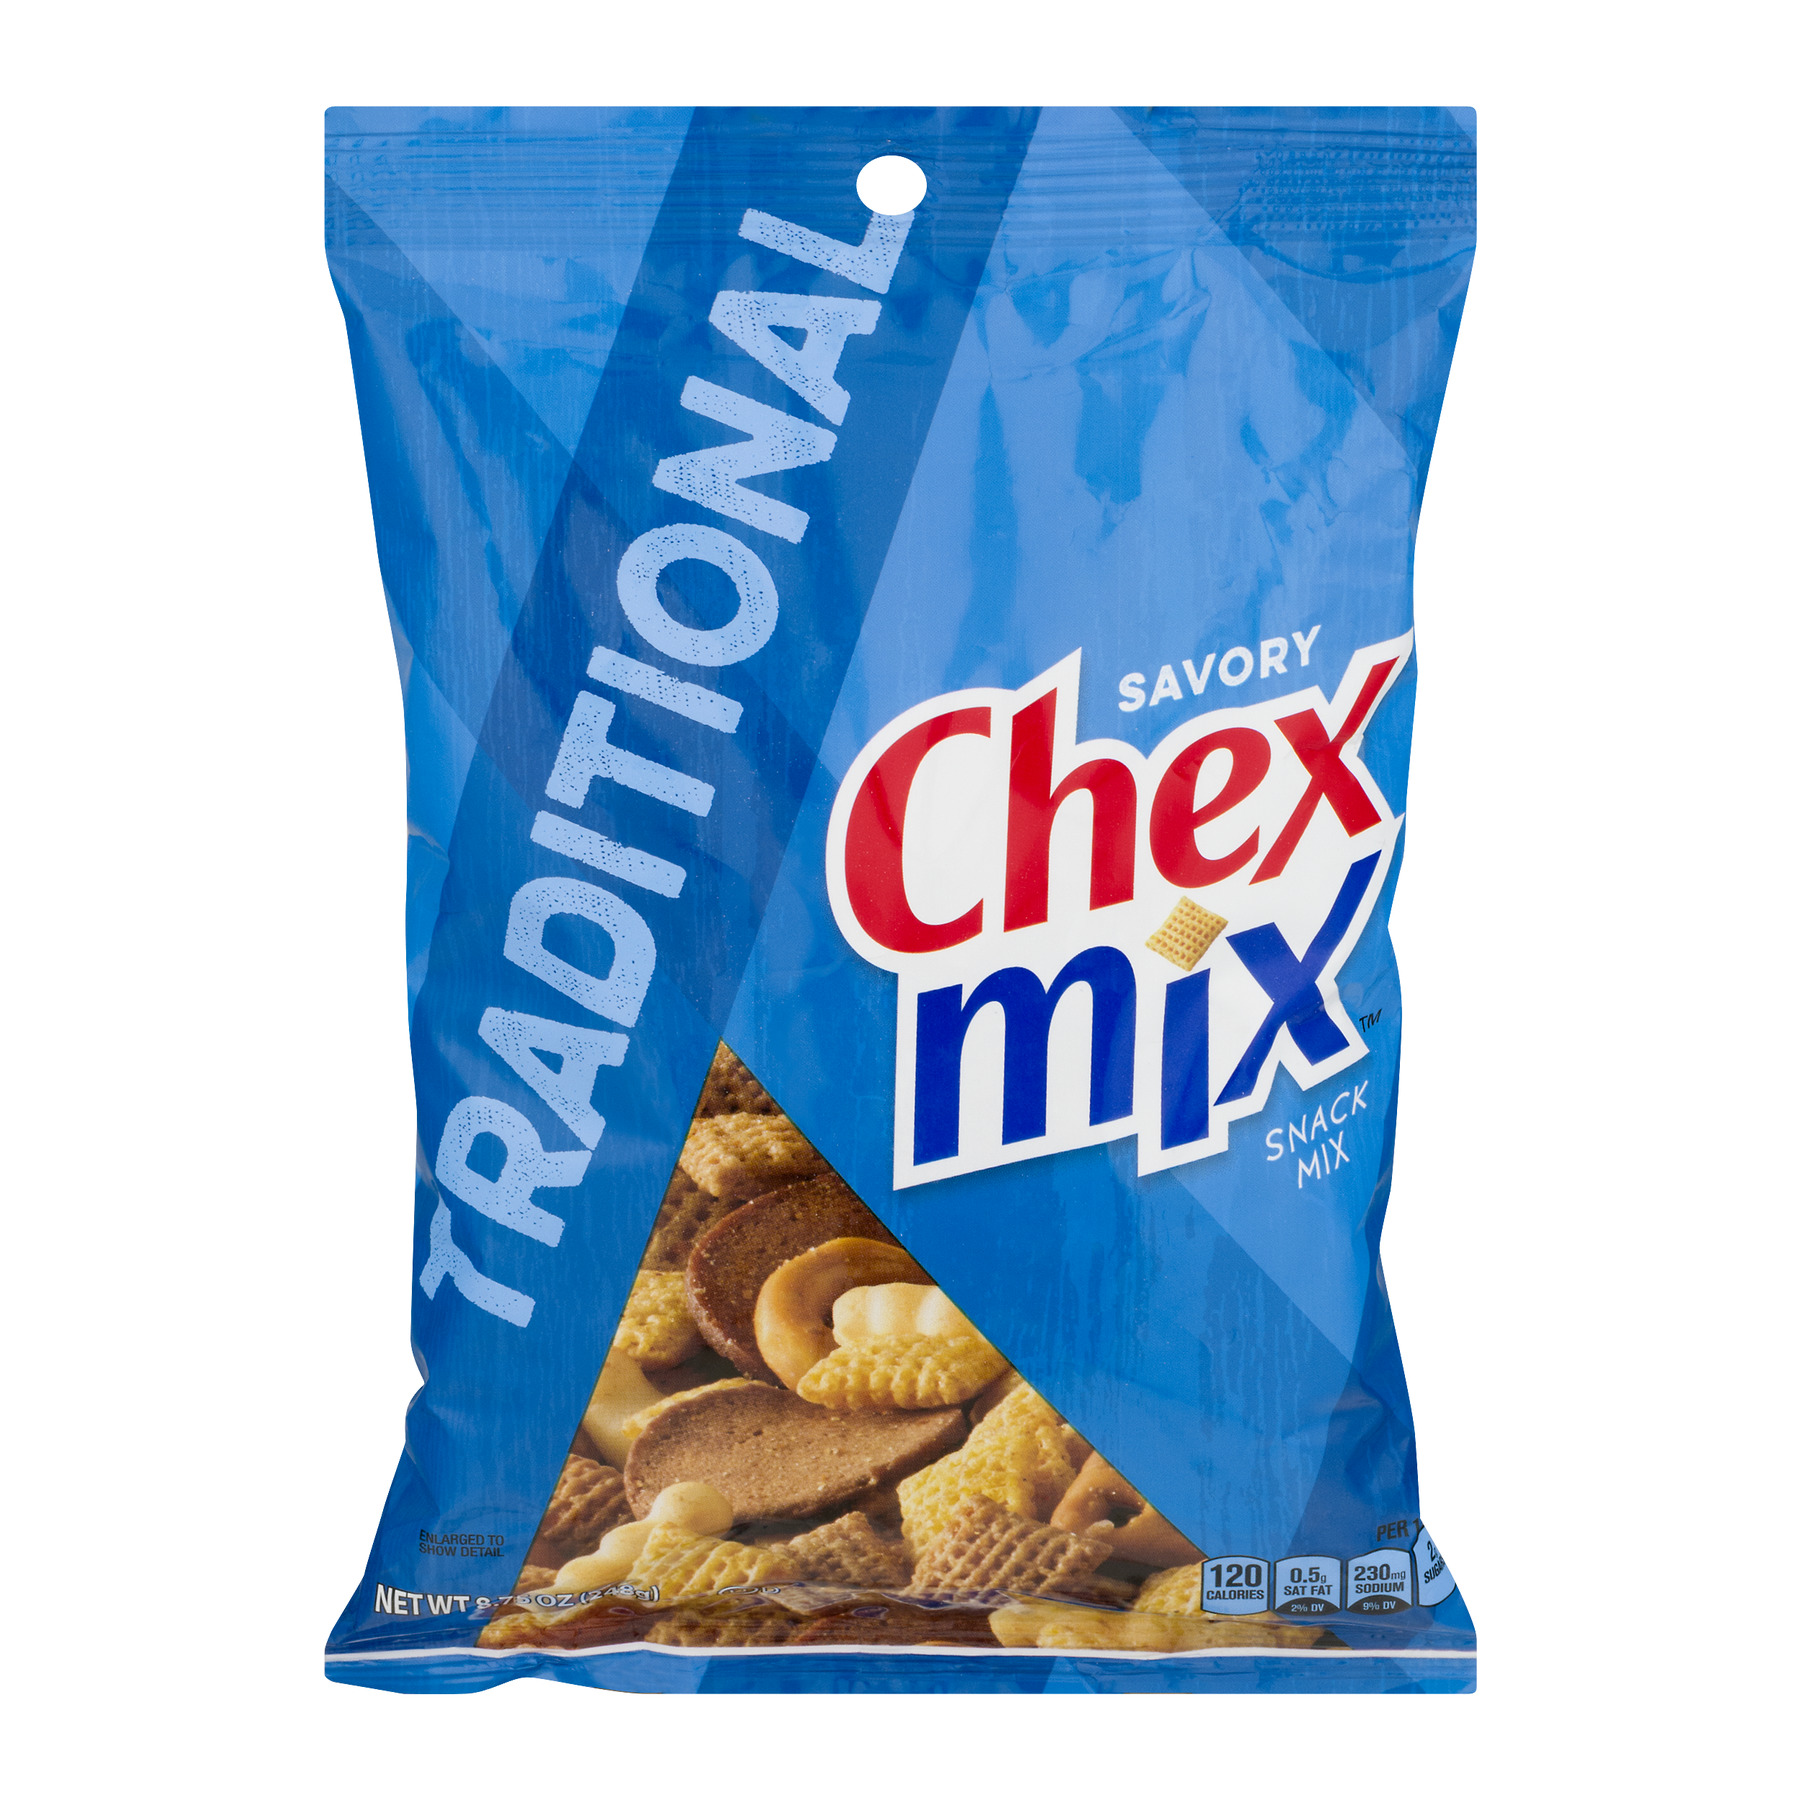 Chex Mix Traditional Savory Snack Mix, 8.75 Oz.